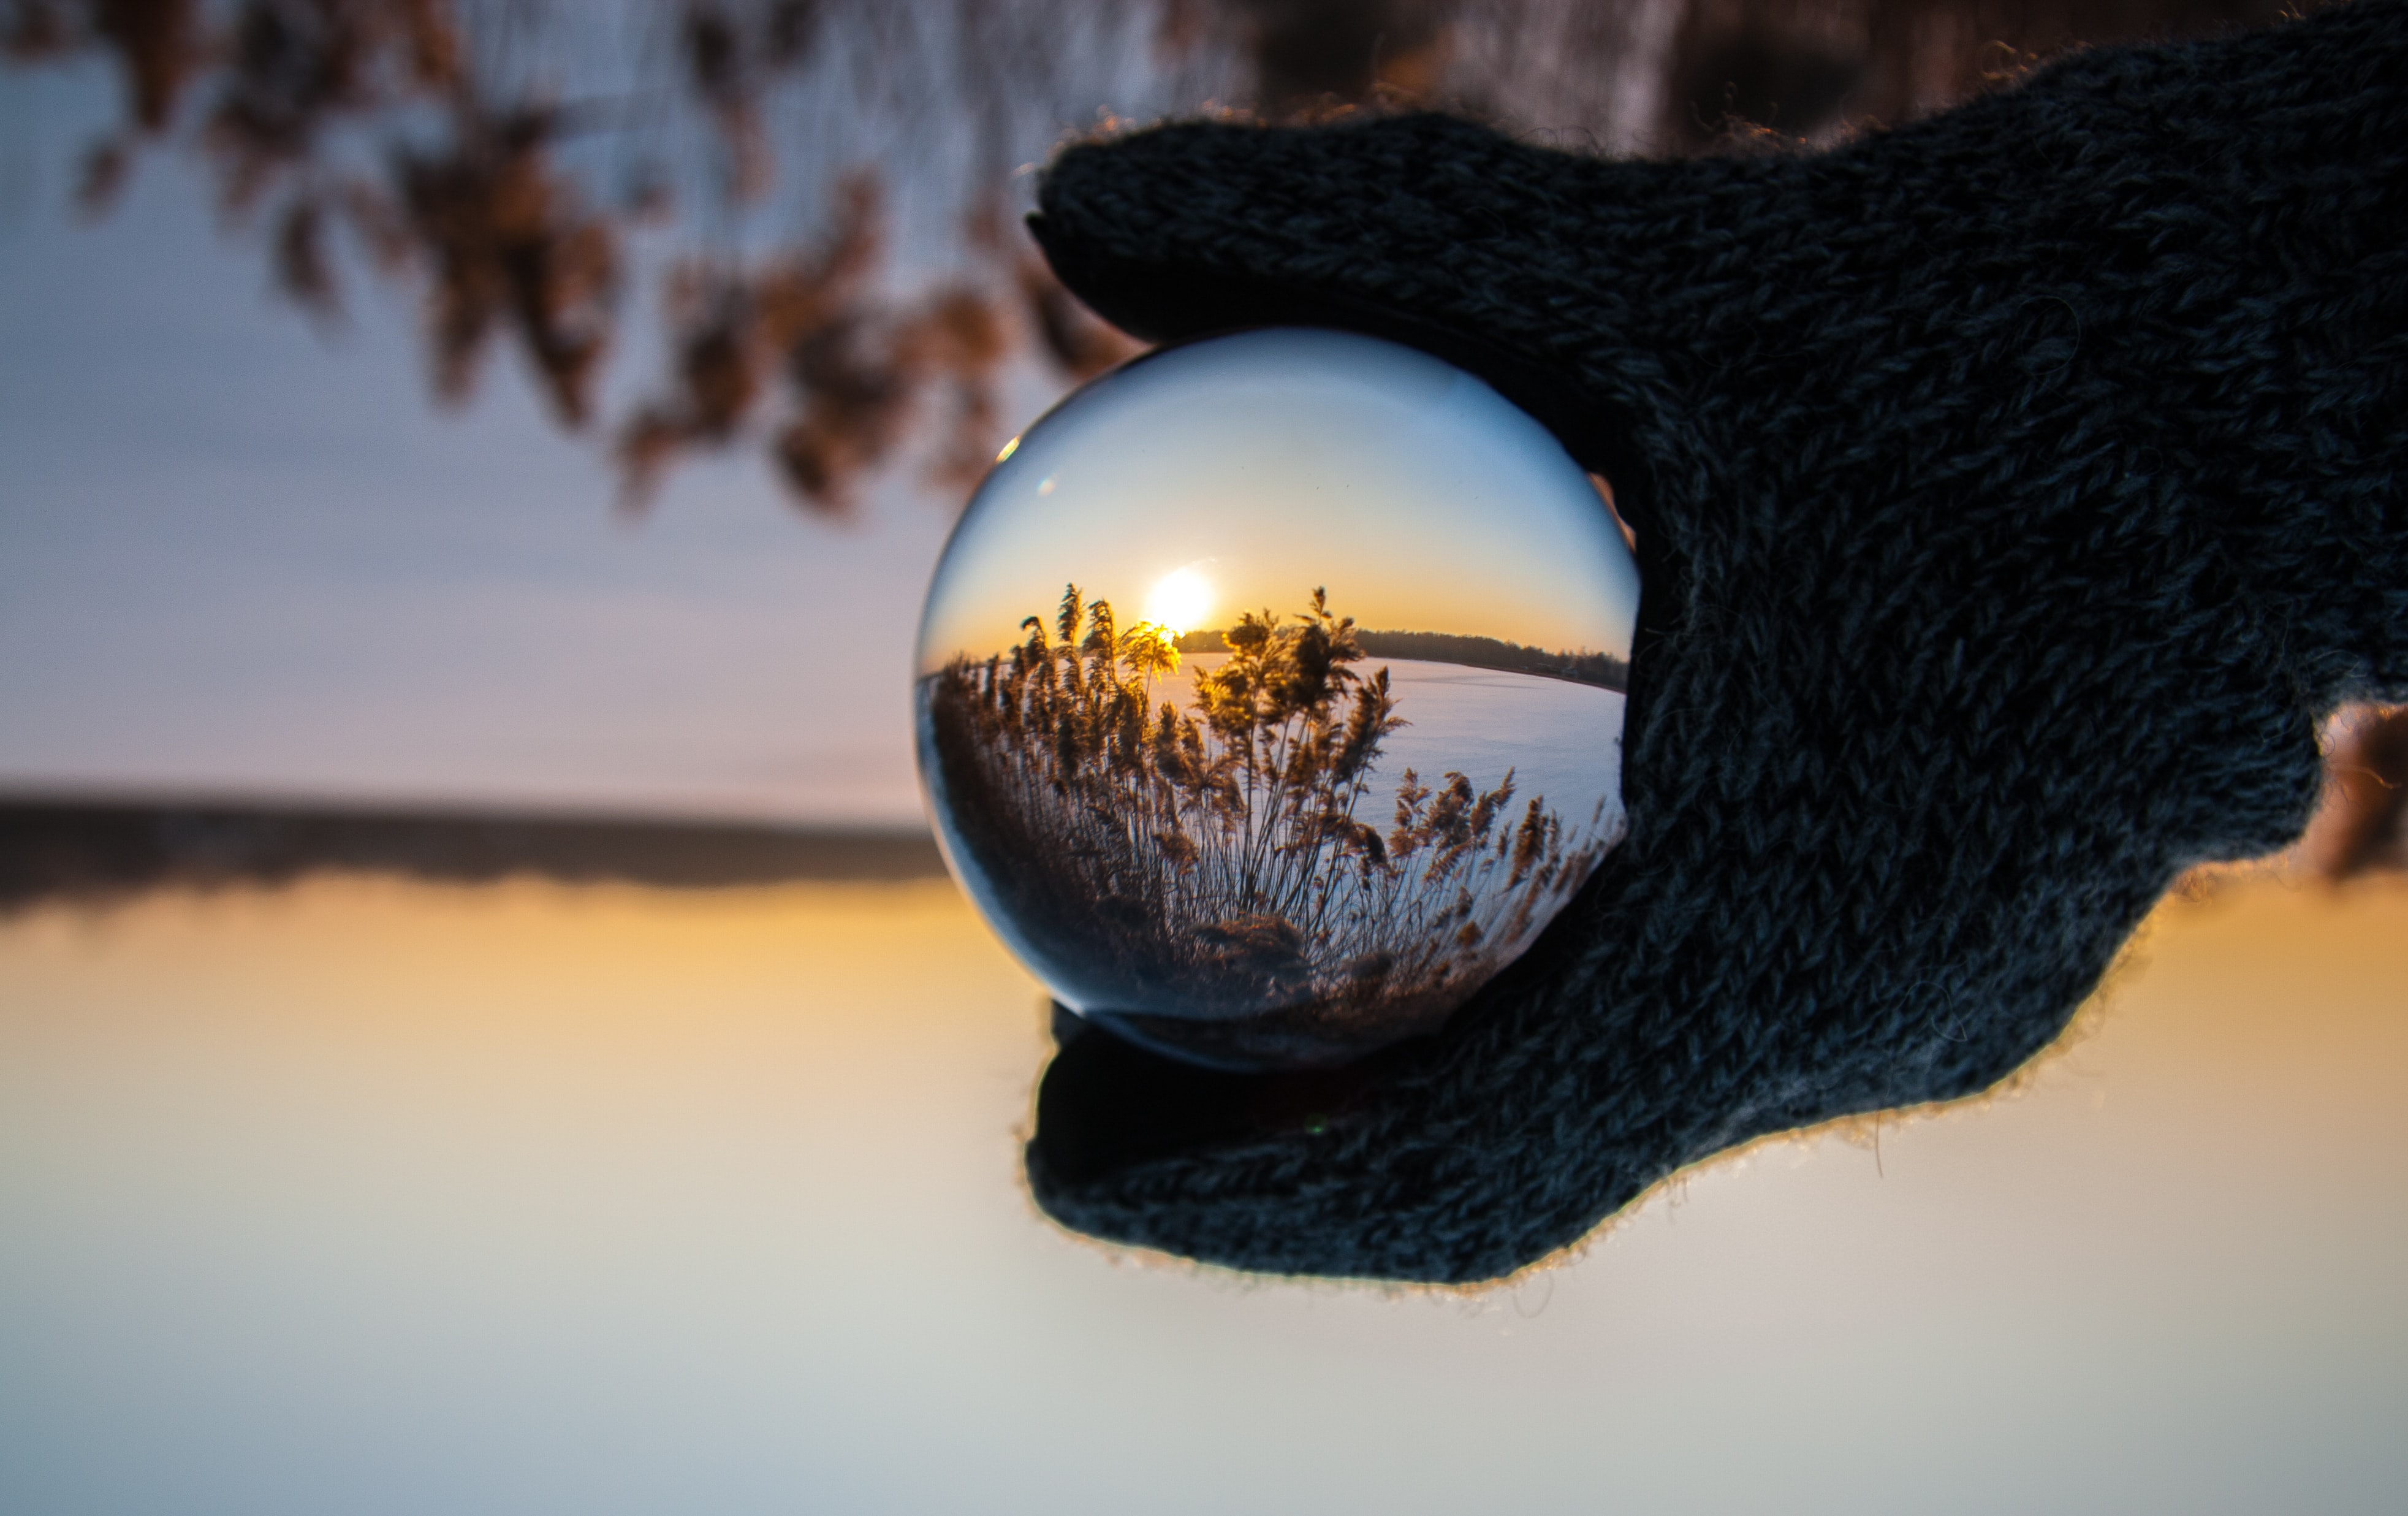 person wearing black gloves holding glass ball reflecting body of water with sunlight